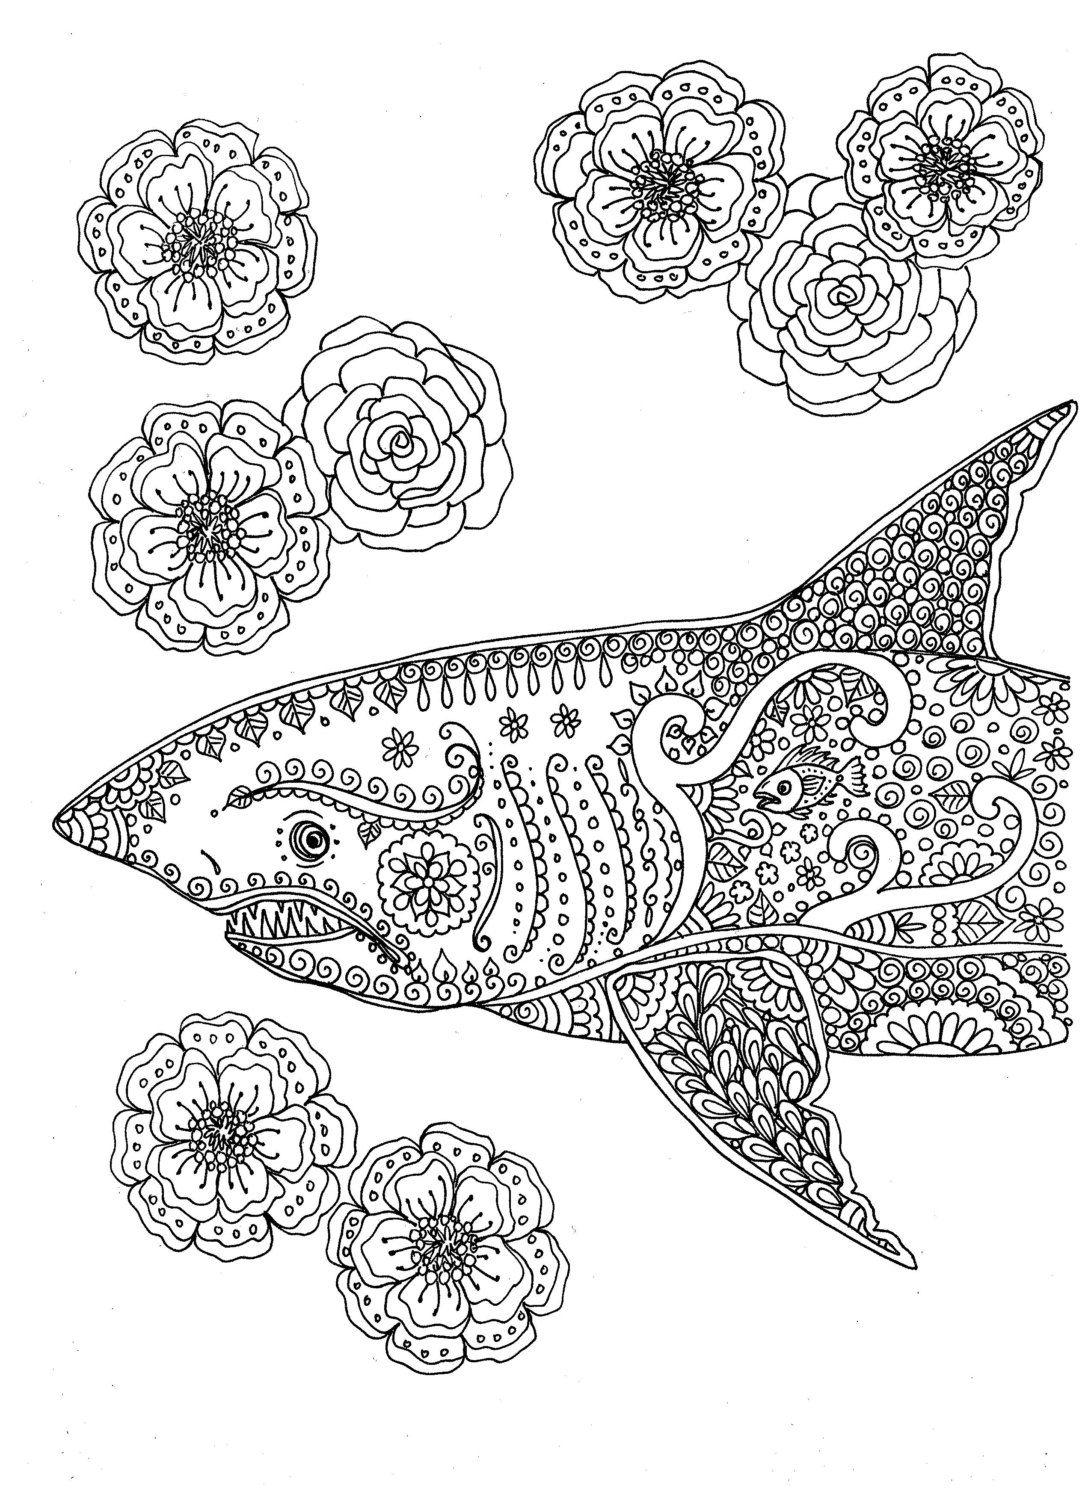 Instant Download Coloring Page Shark Adult You Be The Artist By ChubbyMermaid On Etsy